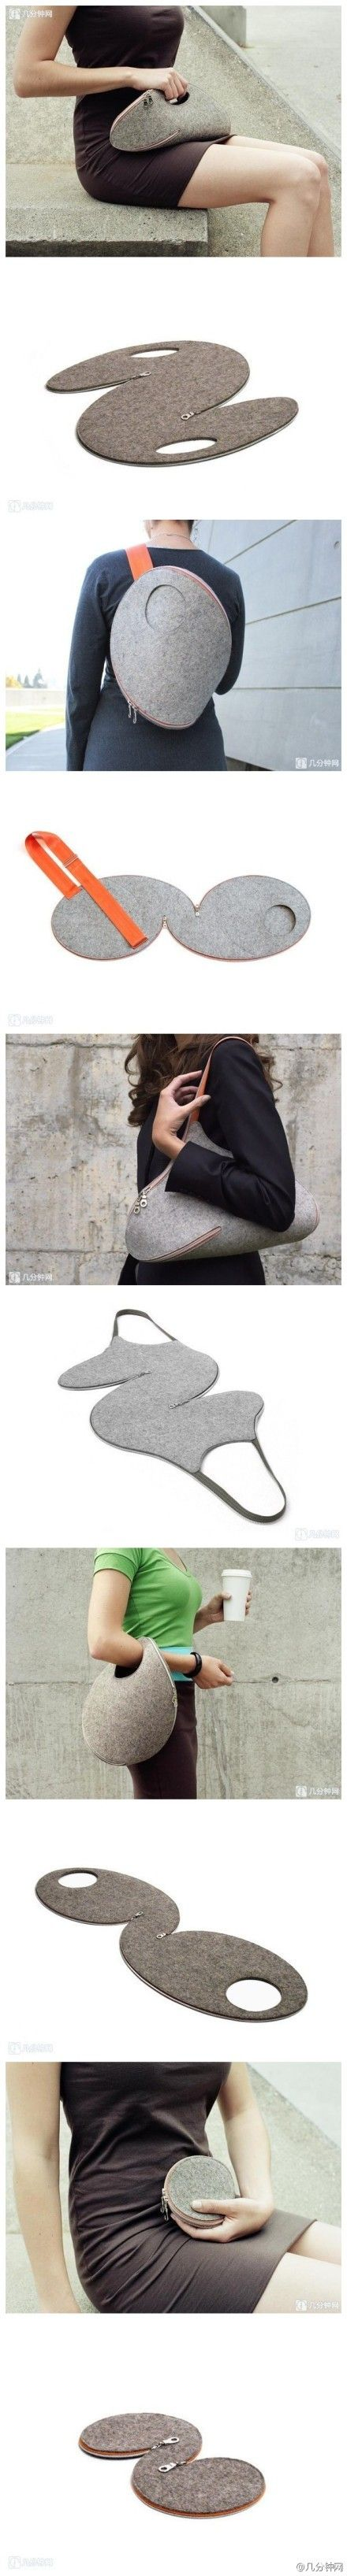 Interesting Japanese designs for one piece zipped bags 手工 生活 艺术 钩针 钩花 | duitang